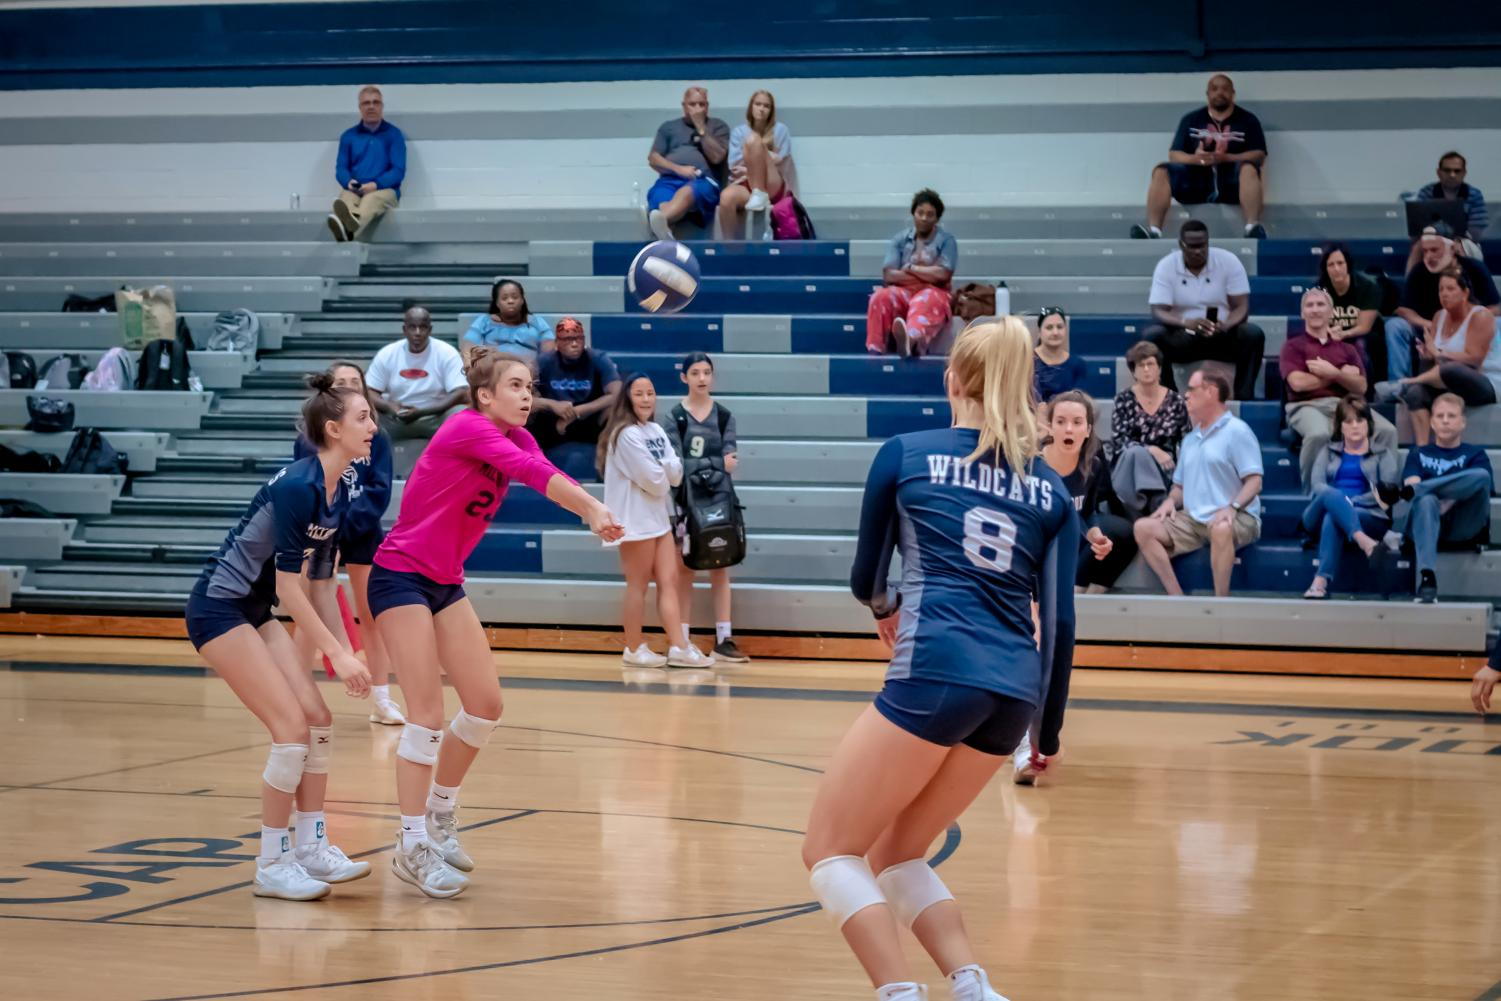 Showcasing her athletic determination, freshman Kate Kilpatrick passes the ball to her teammates in hopes of scoring a point. She put in a lot of work to make the Varsity team and is eager to compete at the highest level all while proving herself to her teammates.